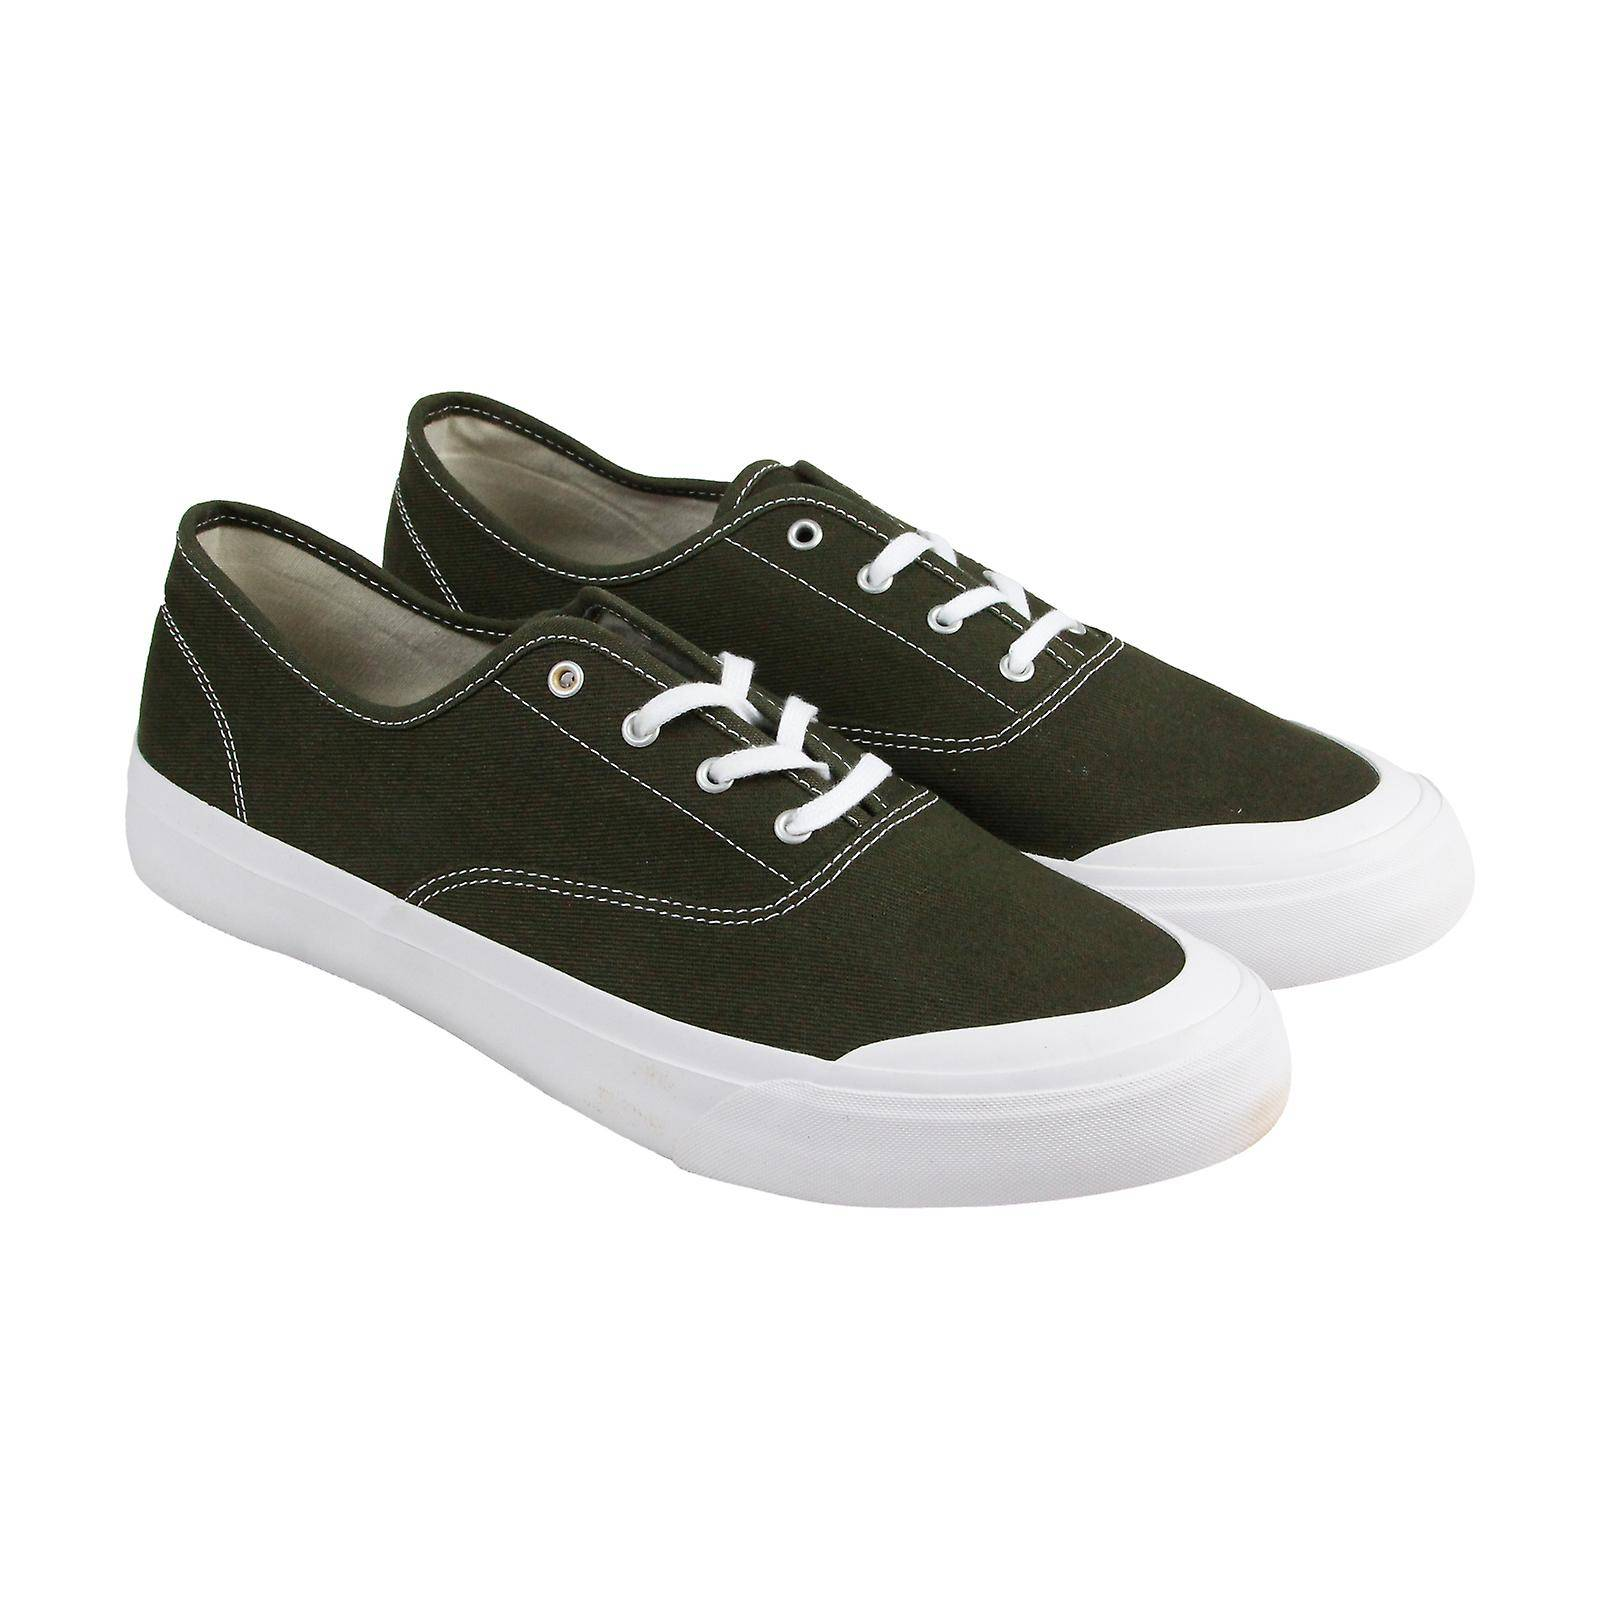 HUF Cromer Mens Green Canvas Low Top Lace Up Athletic Surf Skate Chaussures Laine kaki US 5